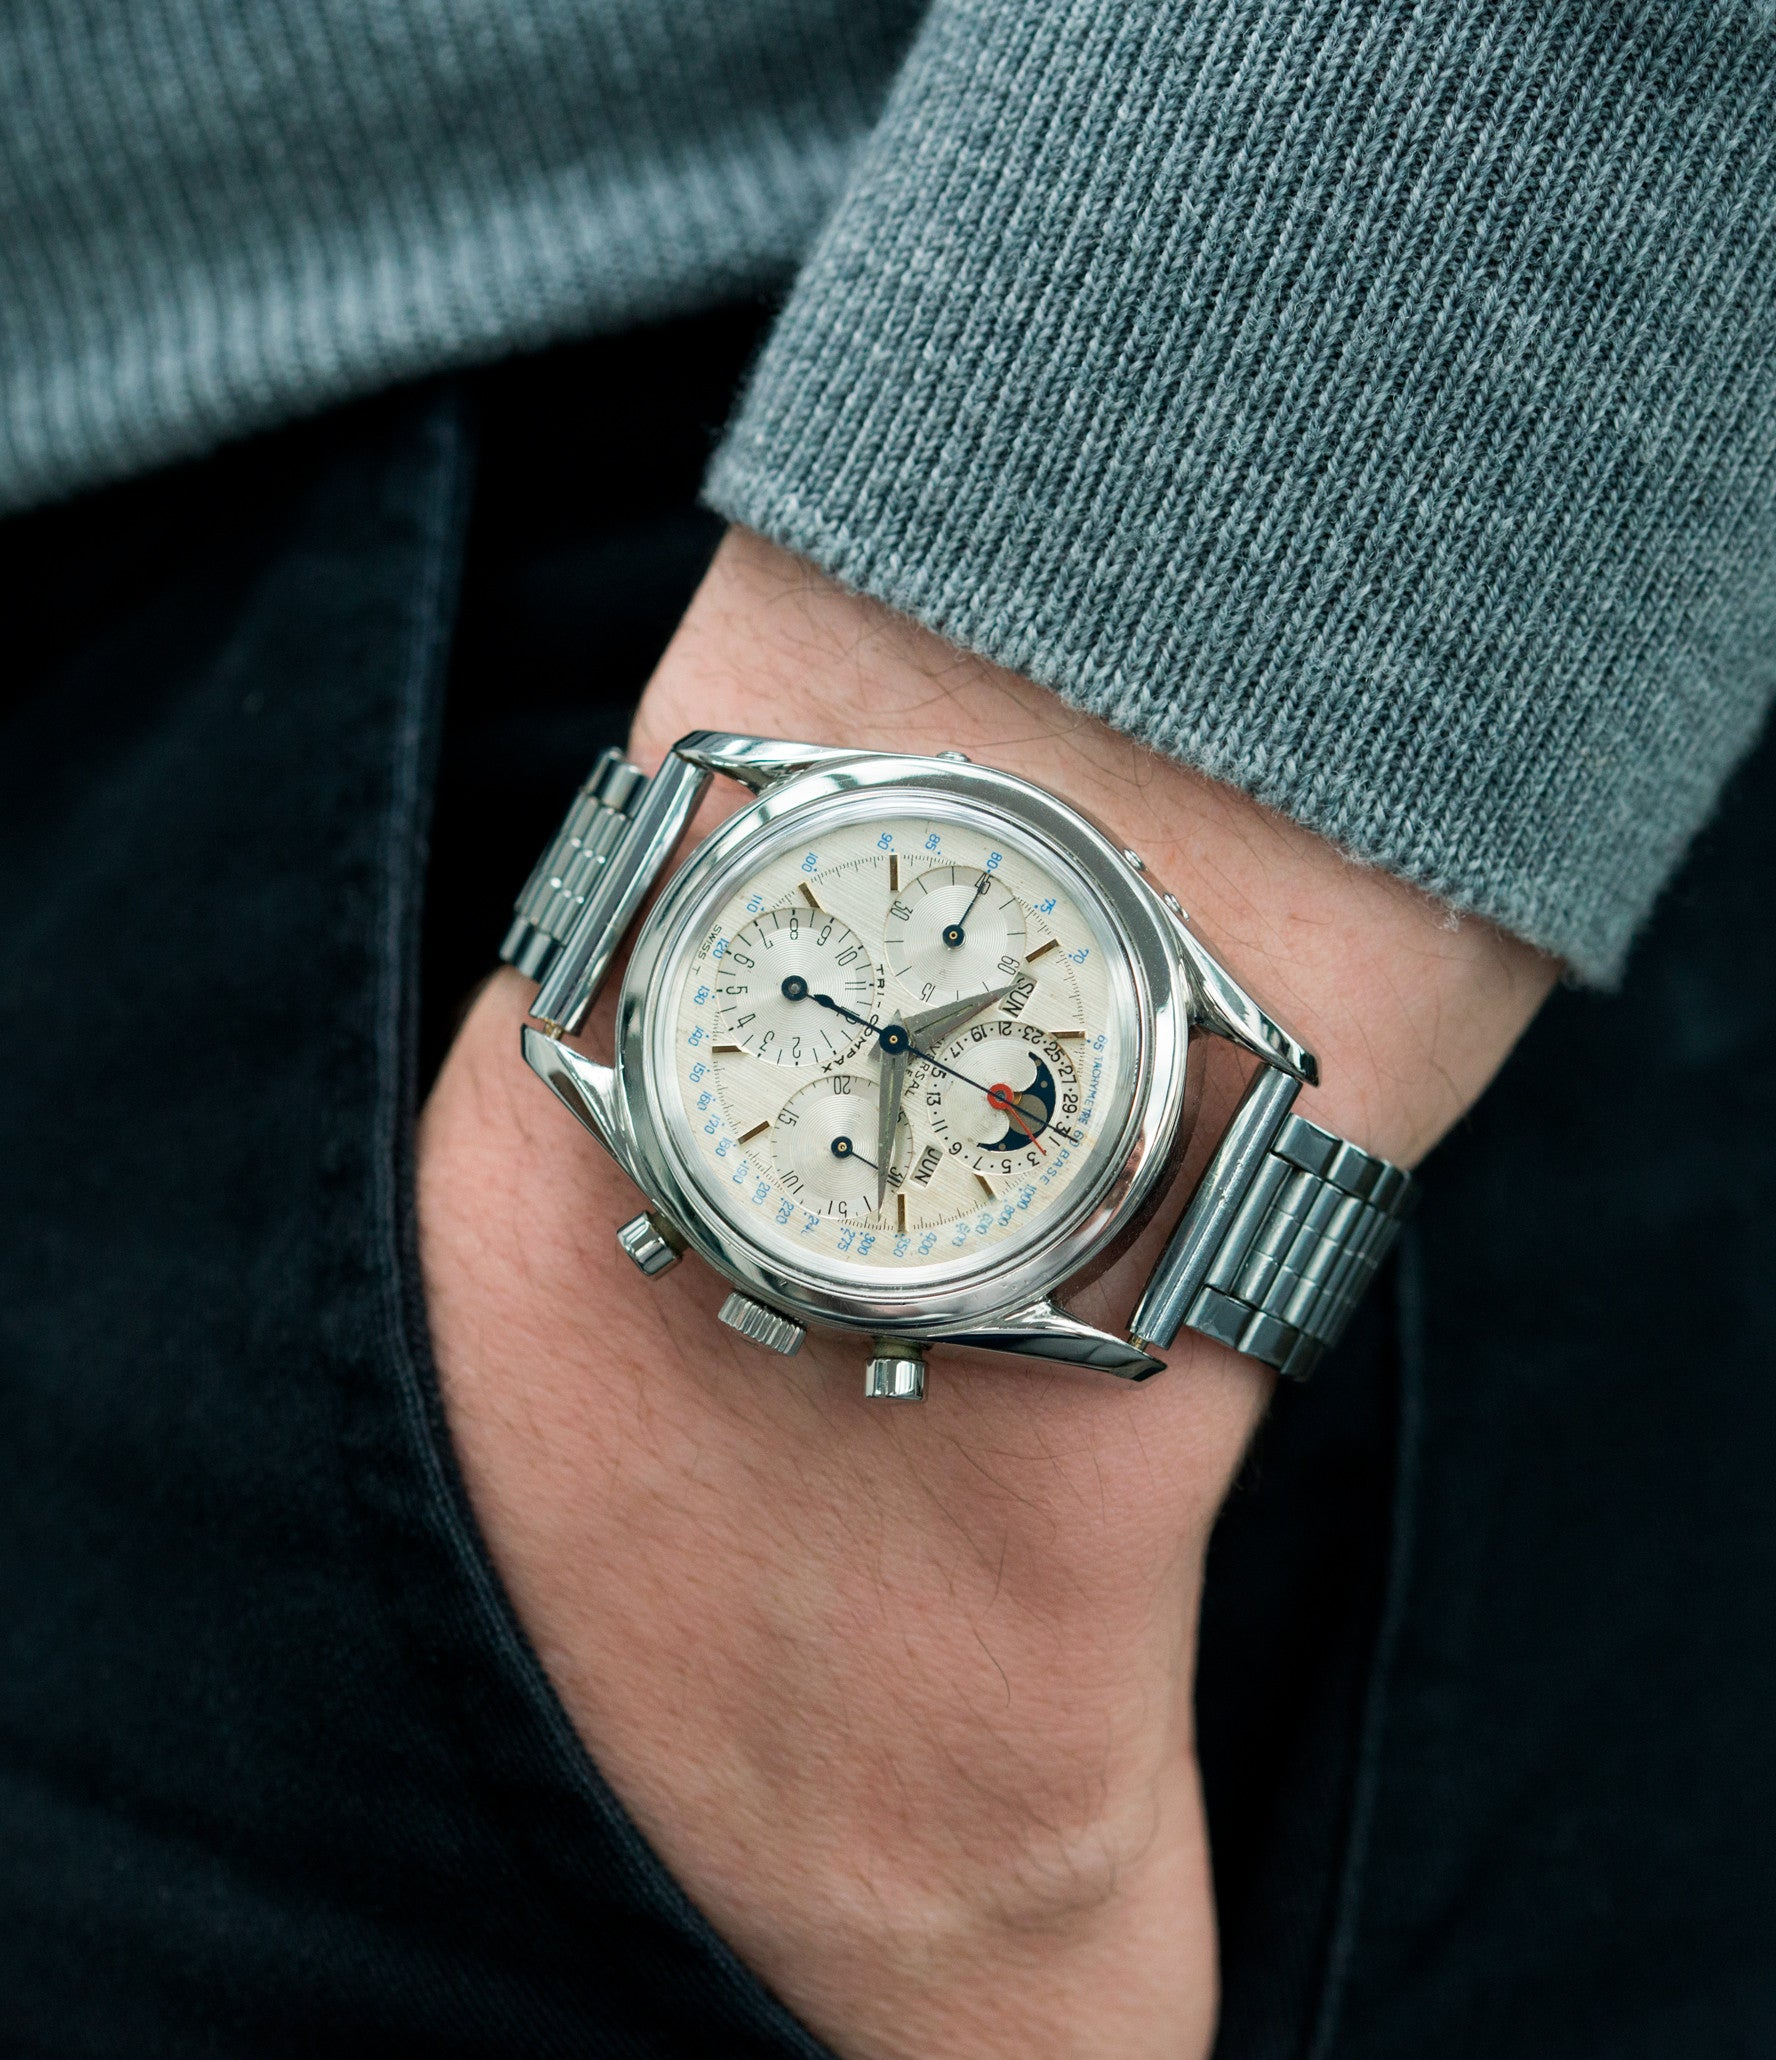 vintage wristwatch Universal Geneve 222100/2 Tri-Compax Triple Calendar Moonphase steel chronograph watch for sale online at A Collected Man London rare vintage watch specialist